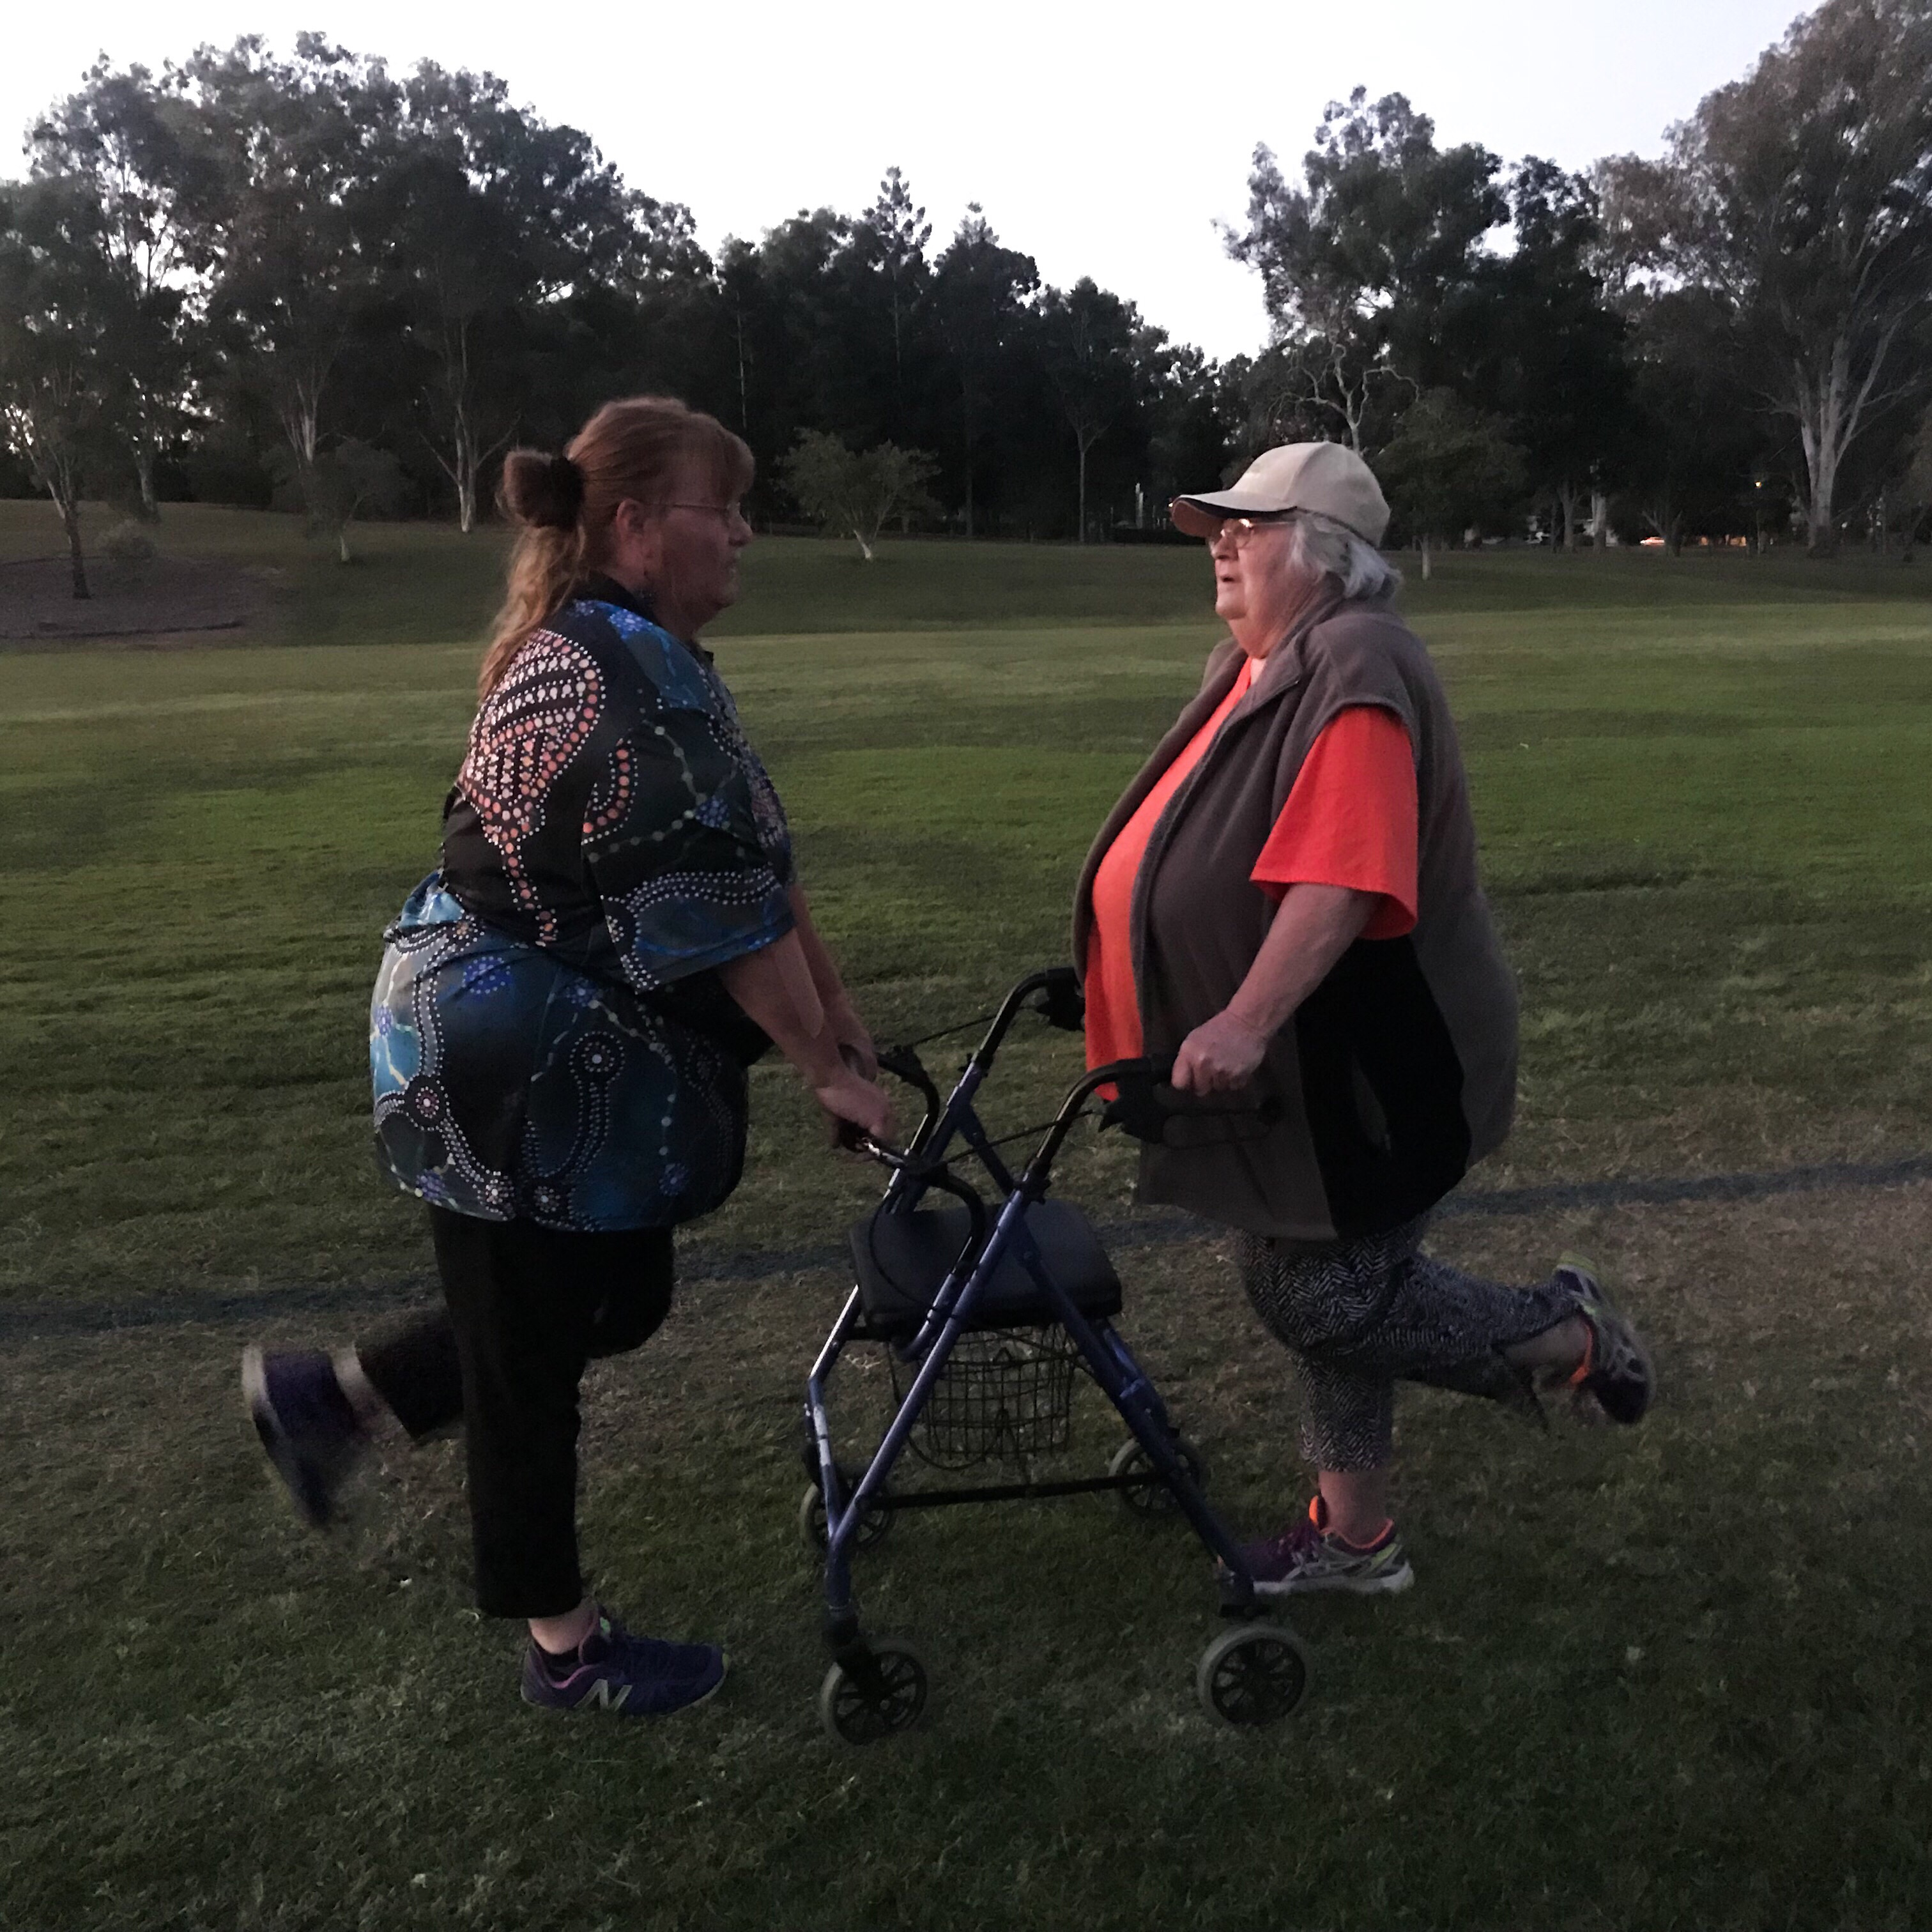 On a green oval, two women wearing exercise gear face each other, holding onto the older woman's walker, one leg each raised behind them.